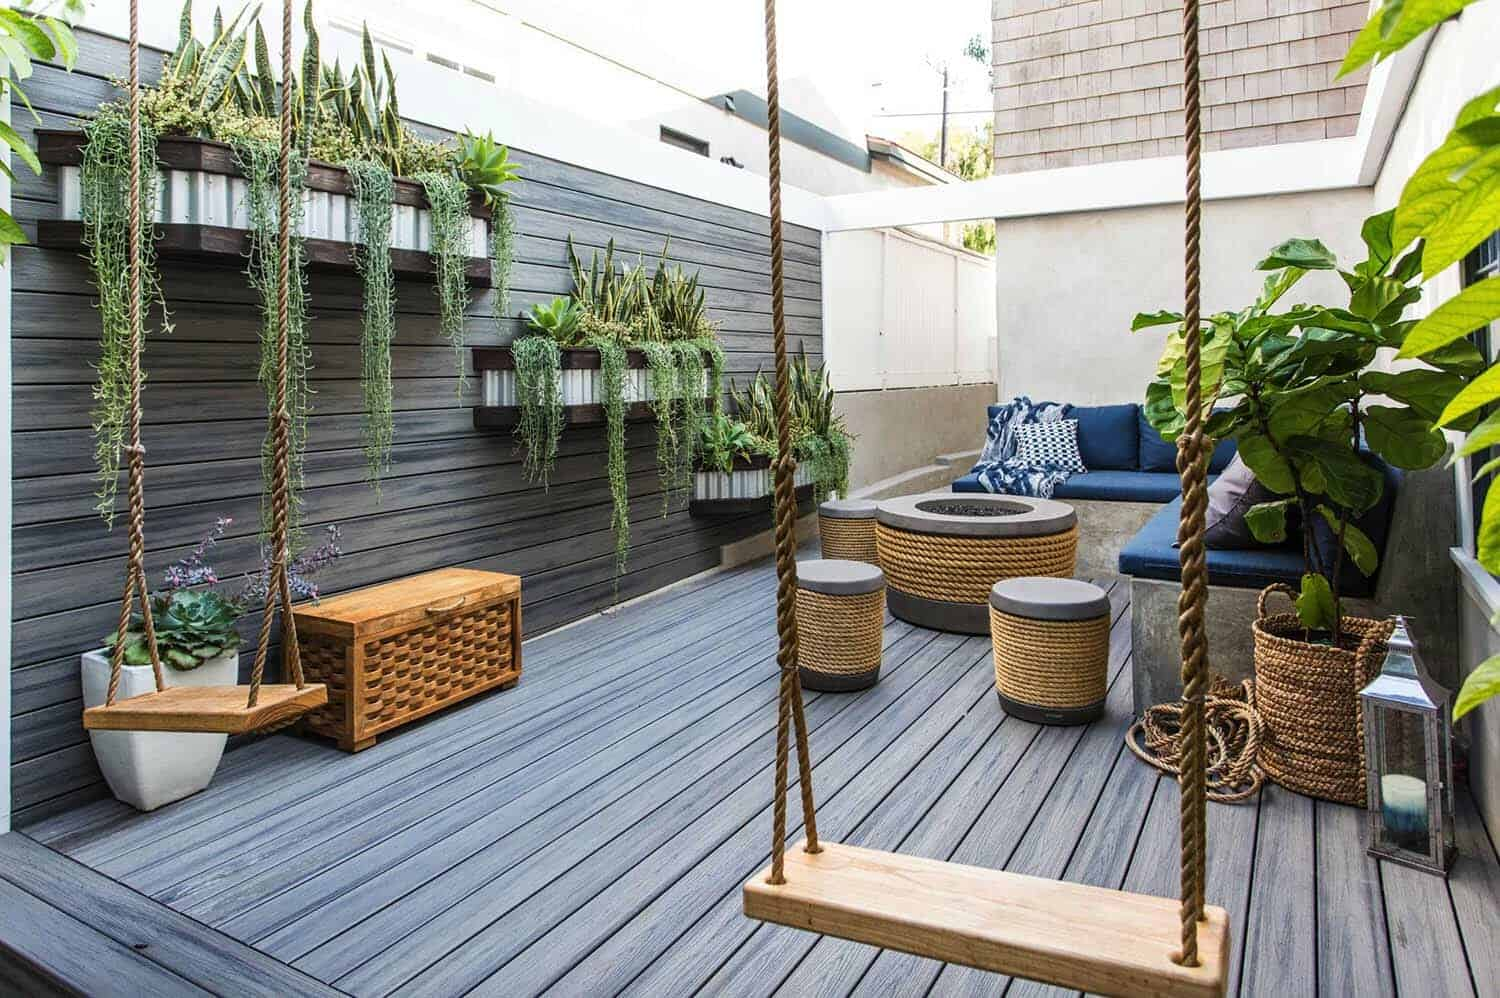 35 Brilliant and inspiring patio ideas for outdoor living ... on Side Patio Ideas id=61625